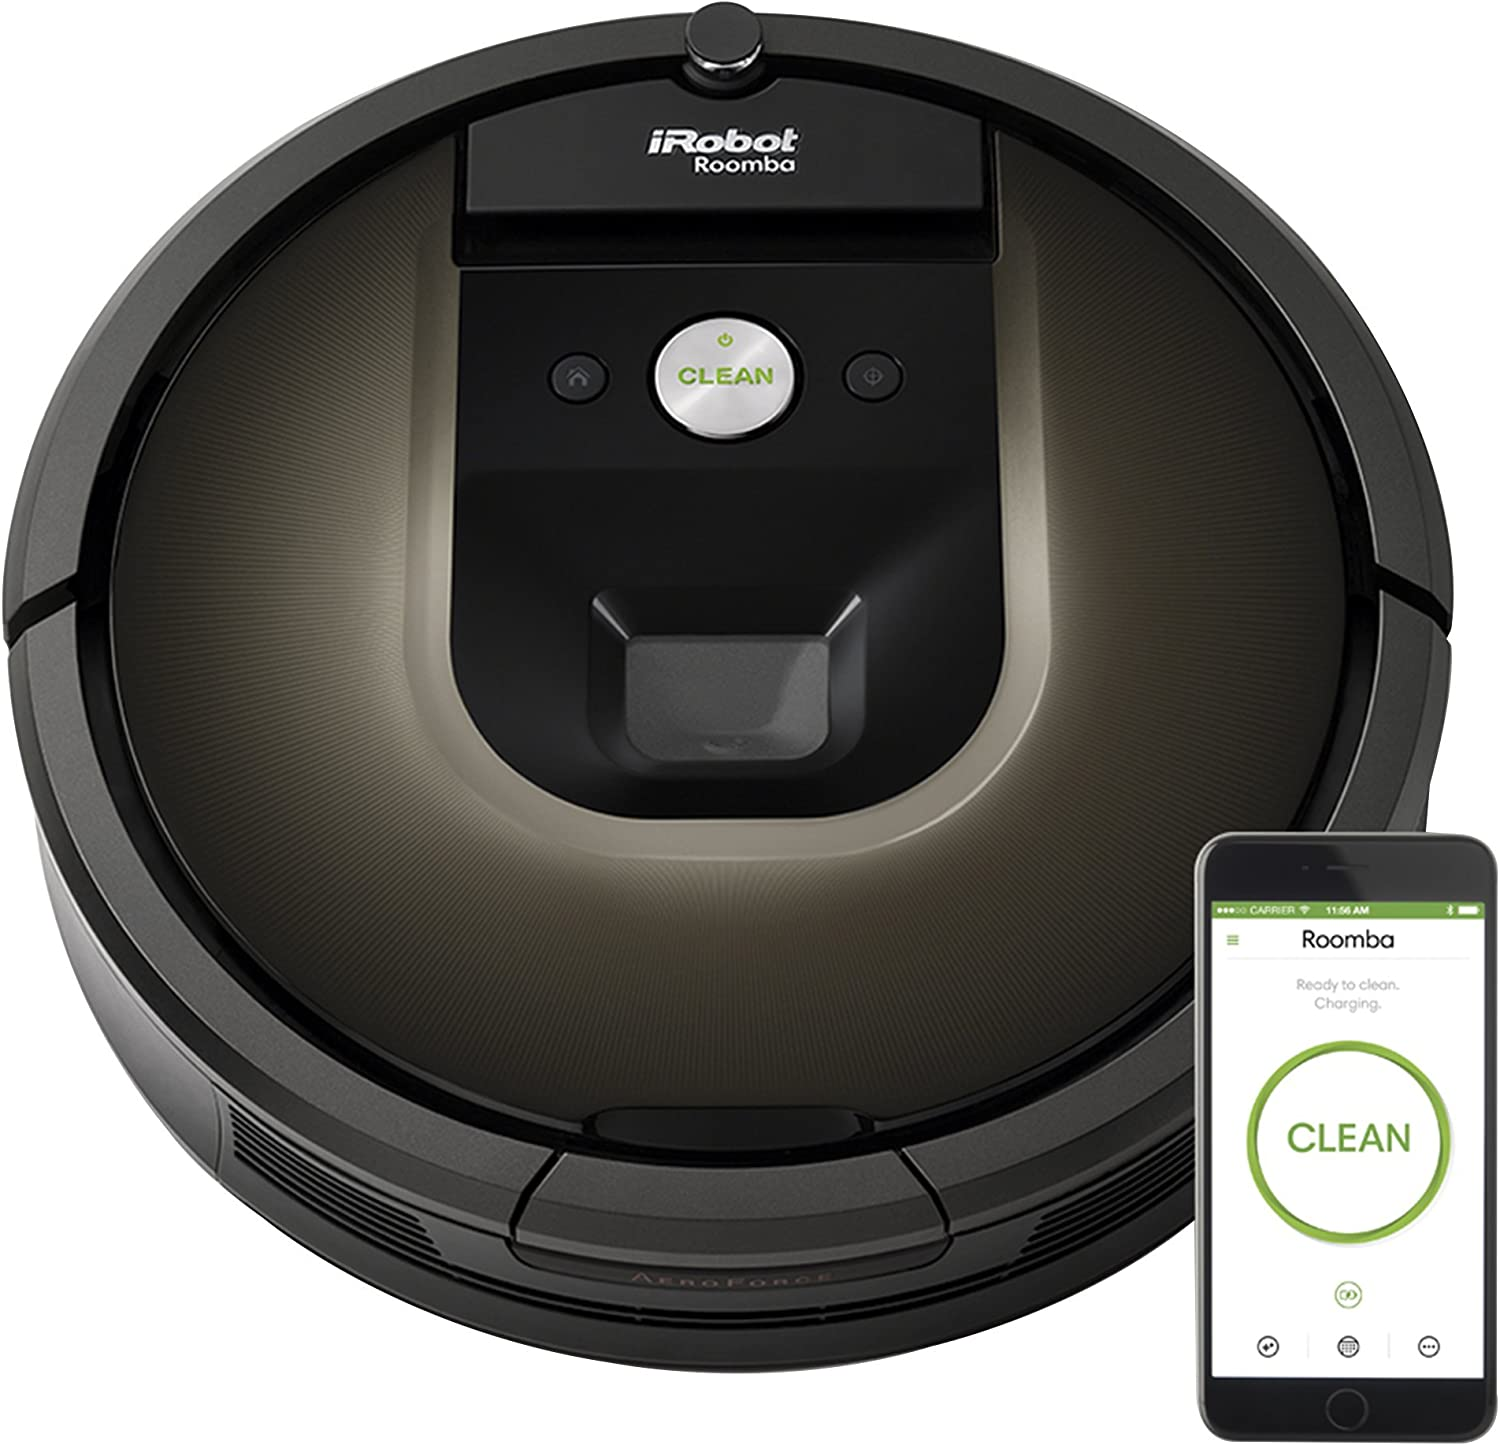 Roomba 980 the Black Friday